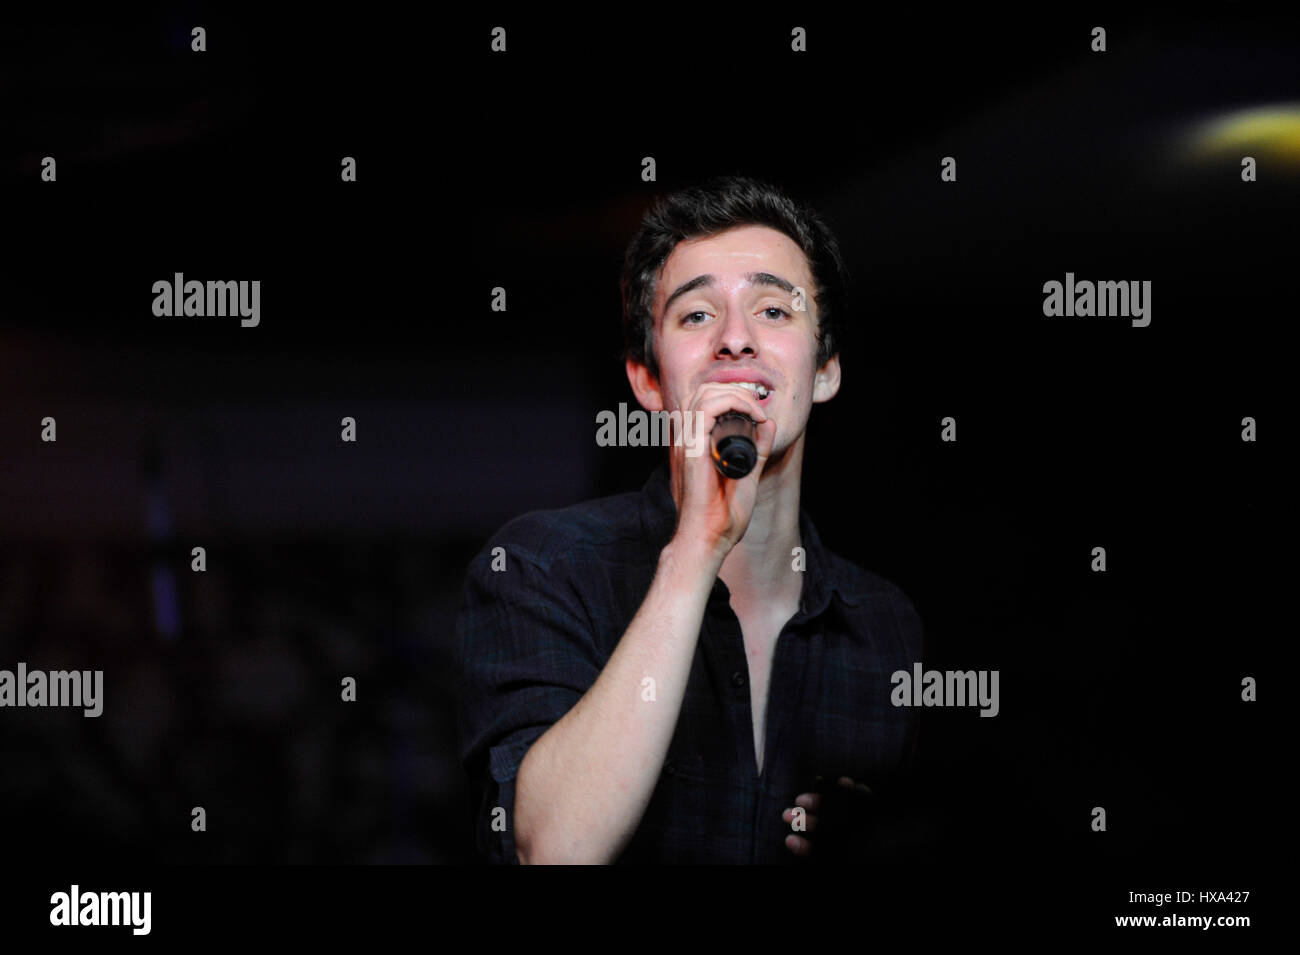 Singer Jack Met of AJR performs at Lucky Strike Hollywood on October 16th, 2014 in Hollywood, California. - Stock Image